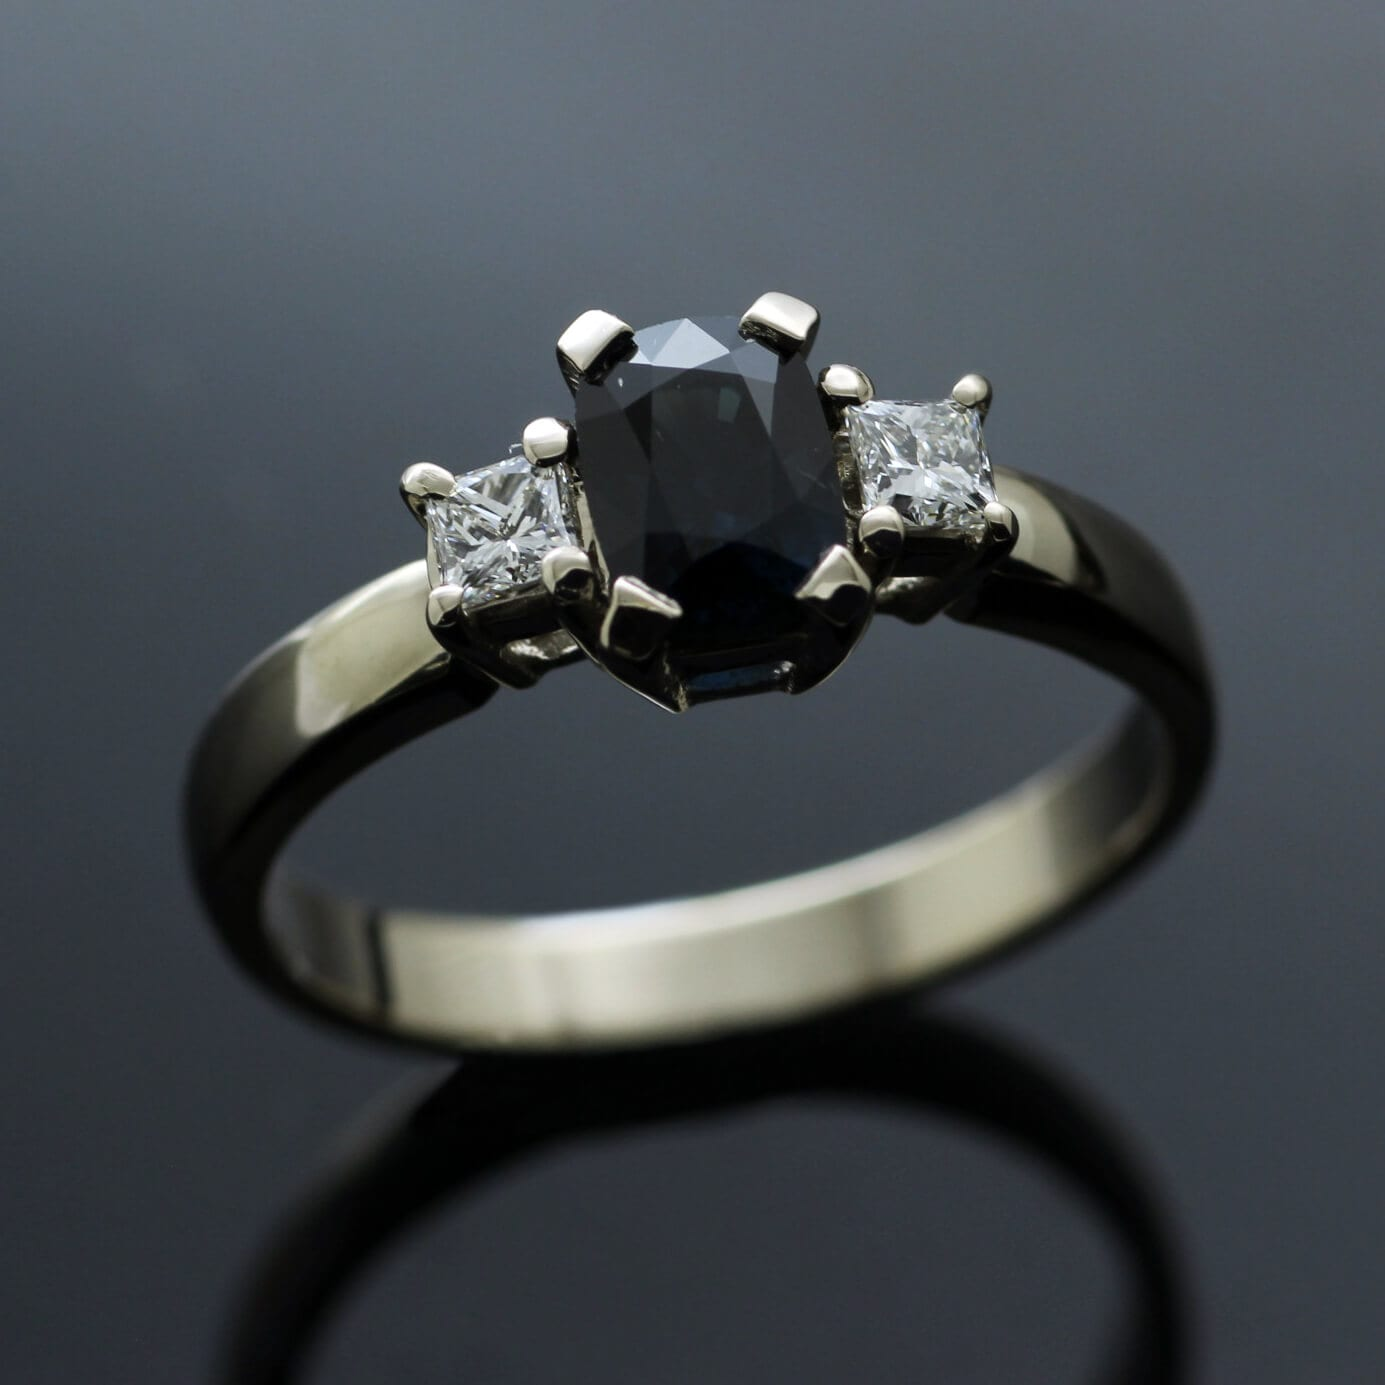 Bespoke contemporary Trilogy ring with Sapphire and twin Princess cut Diamonds